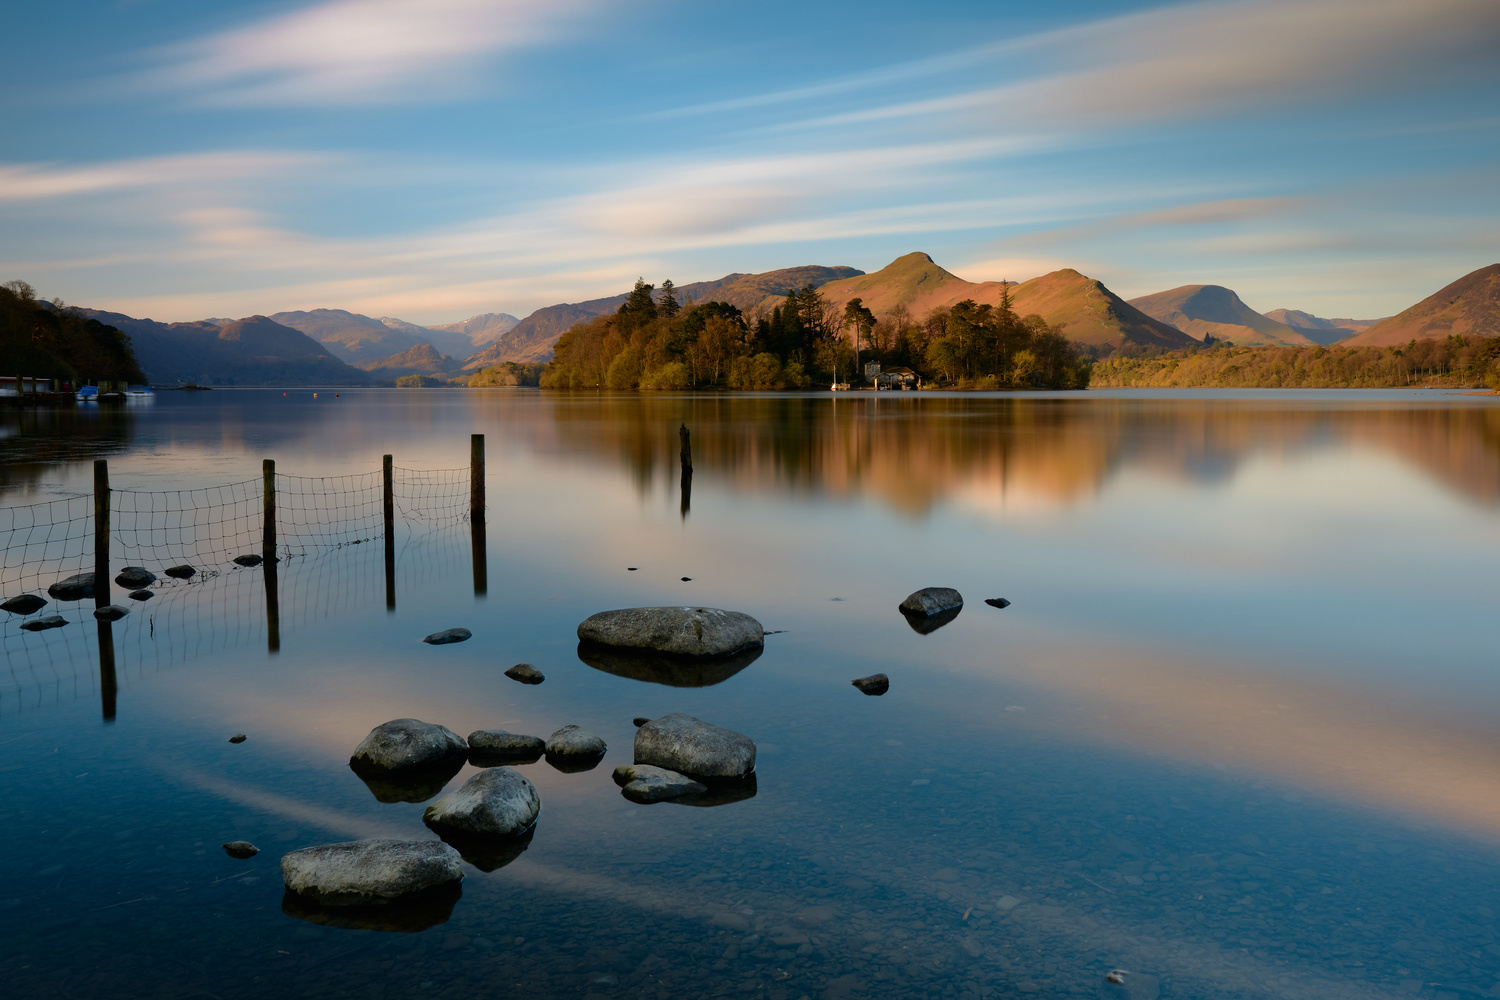 Derwentwater by Dominic Williams